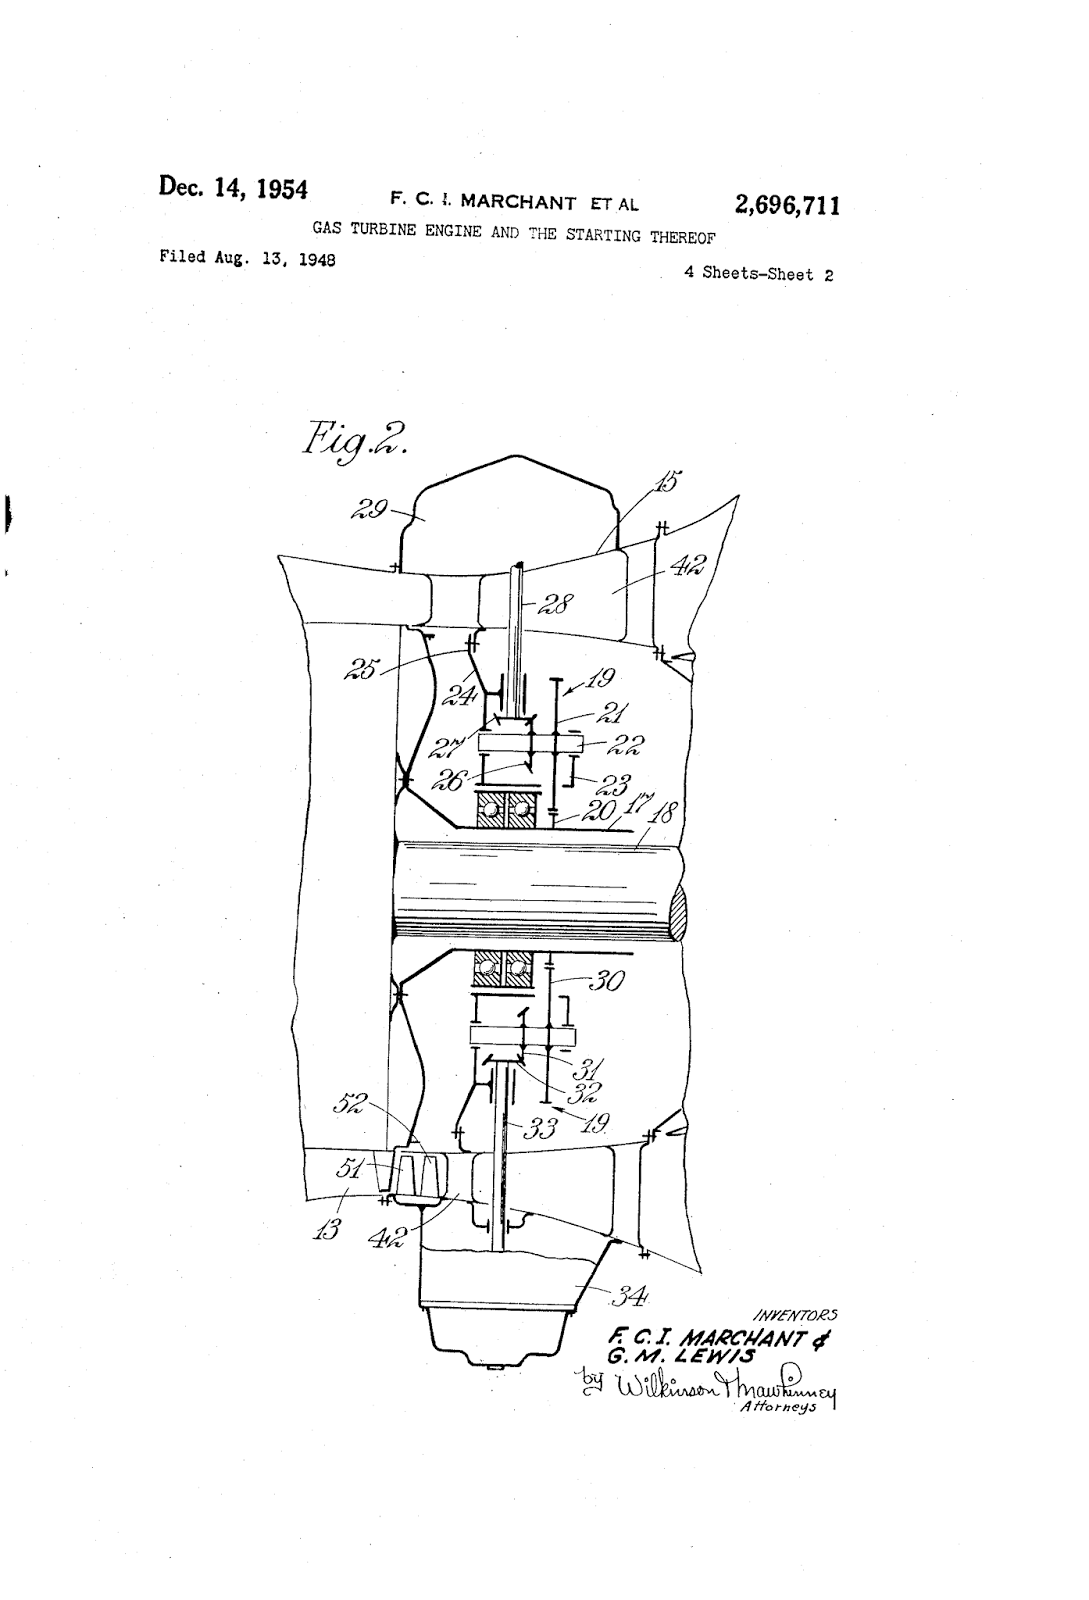 Gas Turbine Engine And The Starting Thereof Auto Part